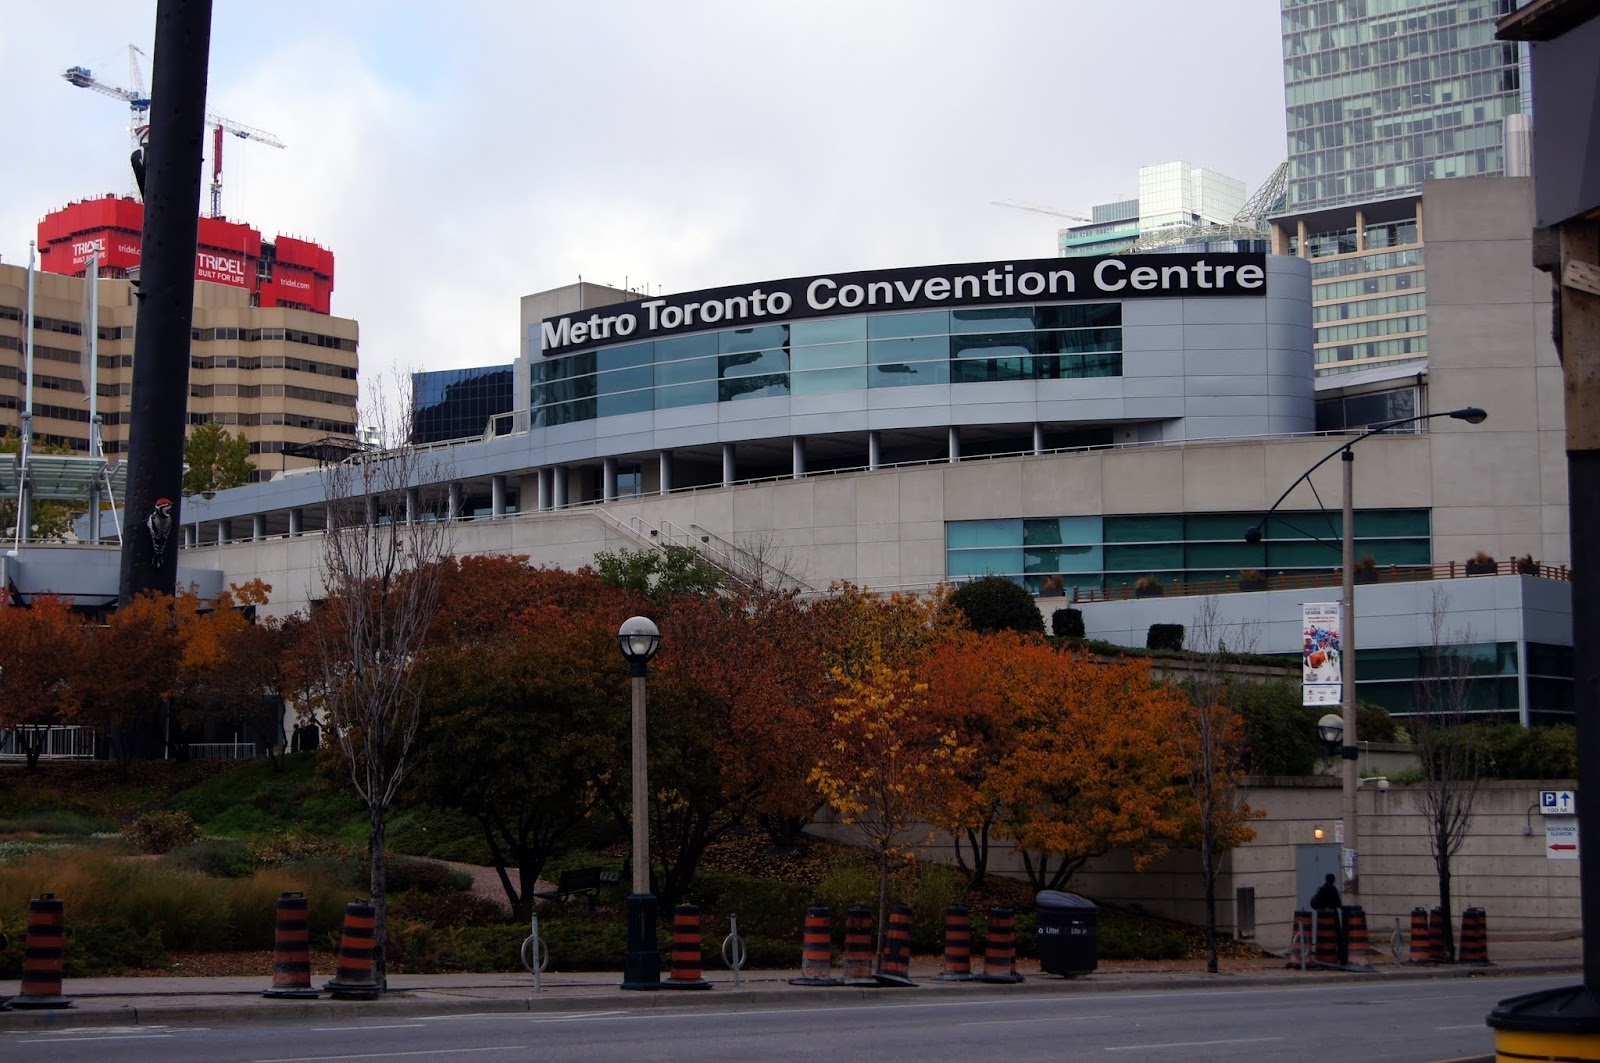 All The Things You Can See At The Metro Toronto Convention